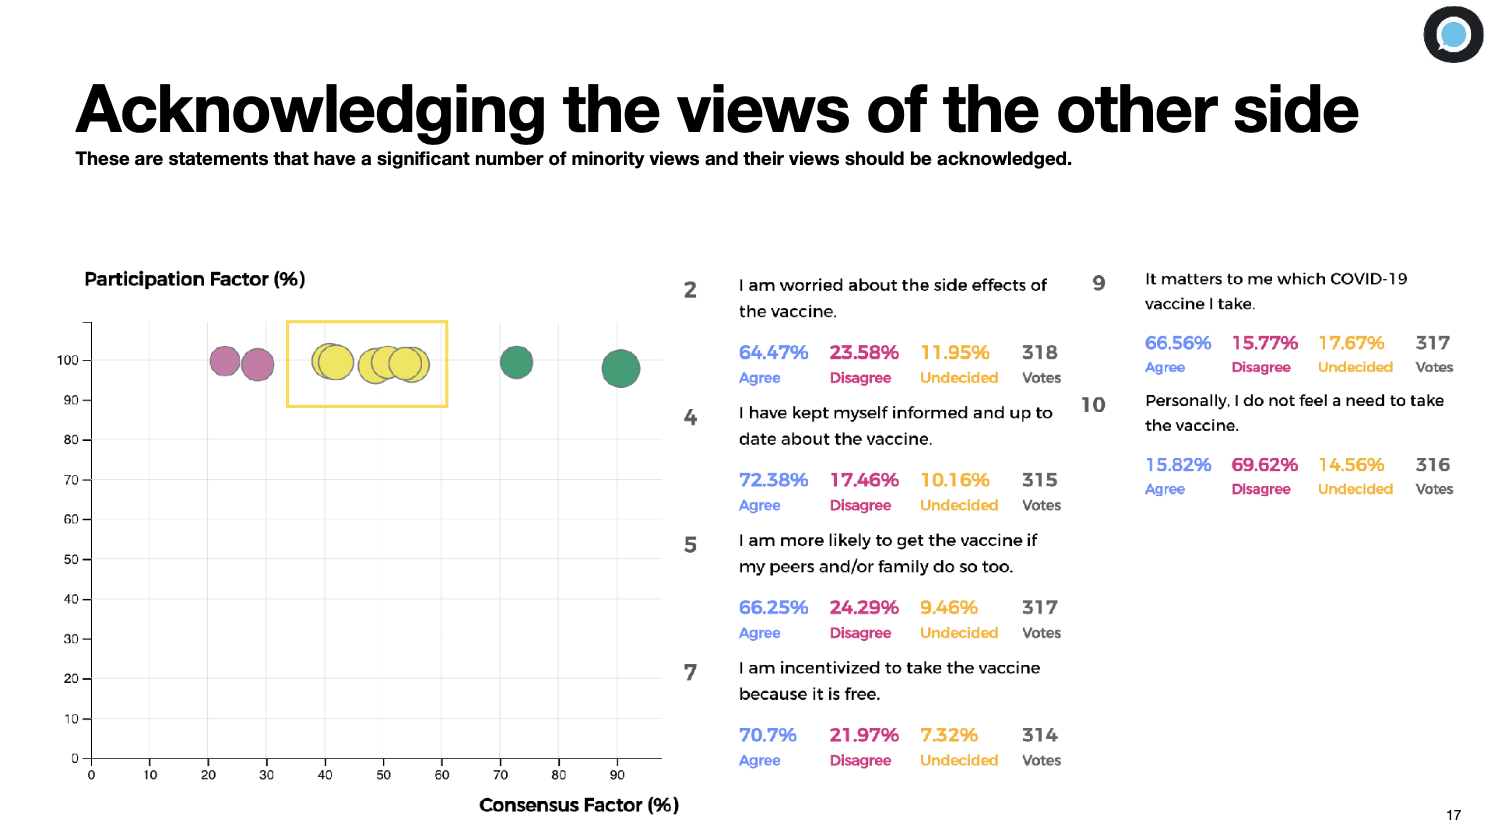 OPPi's analytics dashboard showing the 6 acknowledge statements from the survey ran for I Have a Question. 2, I am worried about the side effects of the vaccine; 4, I have kept myself informed and up to date about the vaccine; 5, I am more likely to get the vaccine if my peers and/or family do so too; 7, I am incentivized to take the vaccine because it is free; 9, it matters to me which COVID vaccine I take; 10, personally, I do not feel the need to get the COVID vaccine.